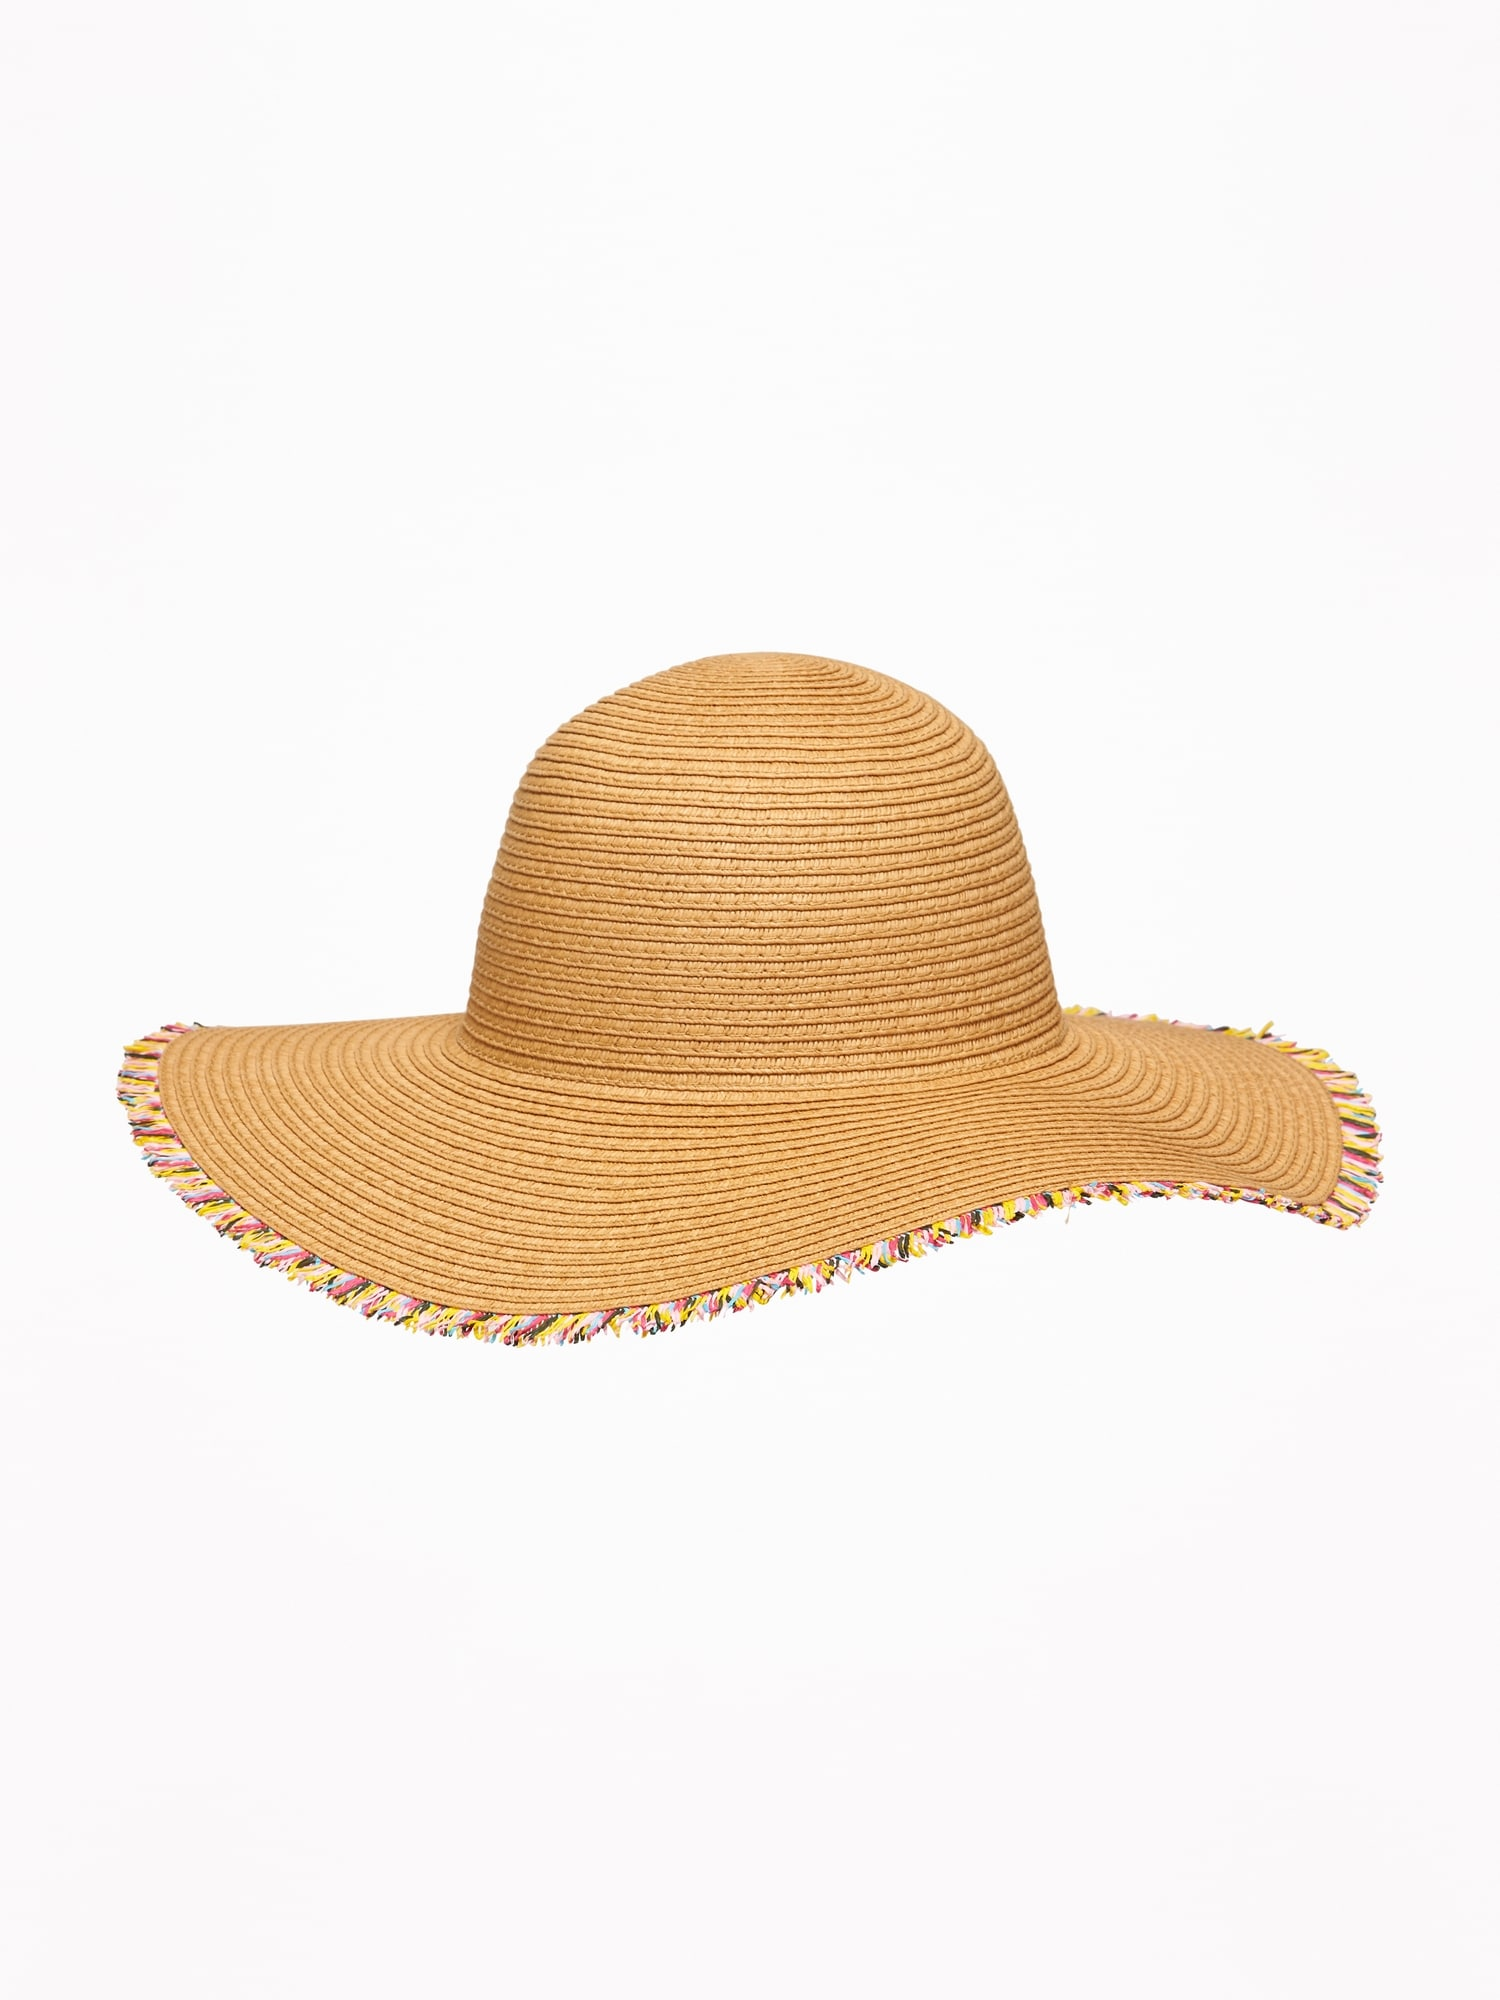 336cd27f Fringed Straw Sun Hat For Toddler Girls | Old Navy